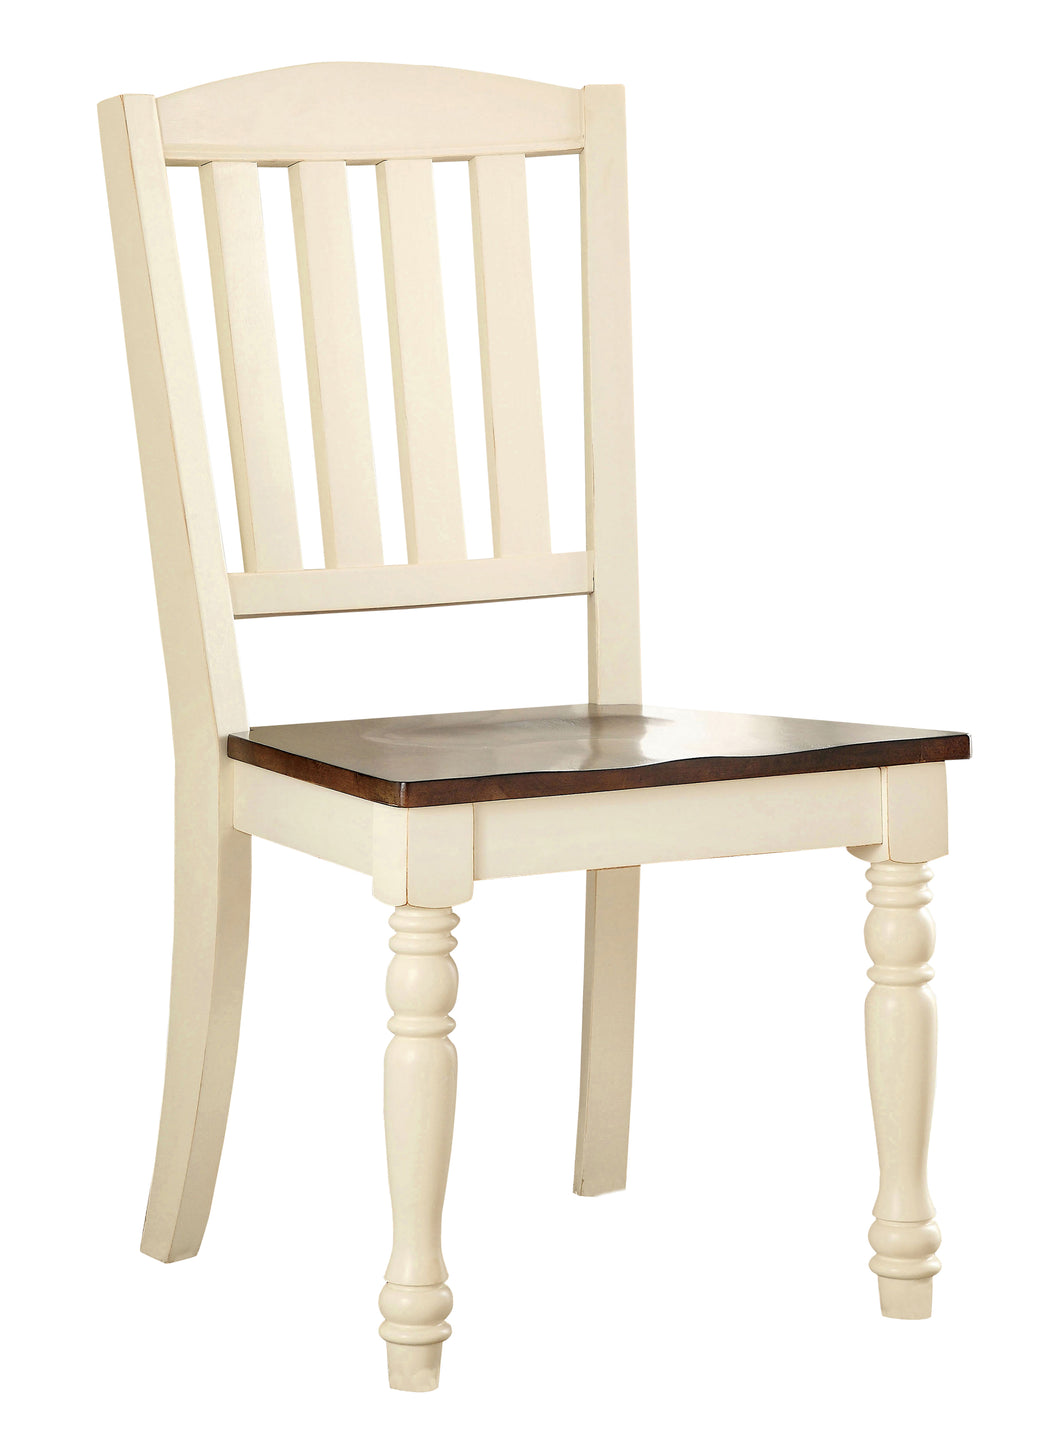 Harrisburg Cottage Style Dark Oak and Vintage White Dining Chair, Set of 2